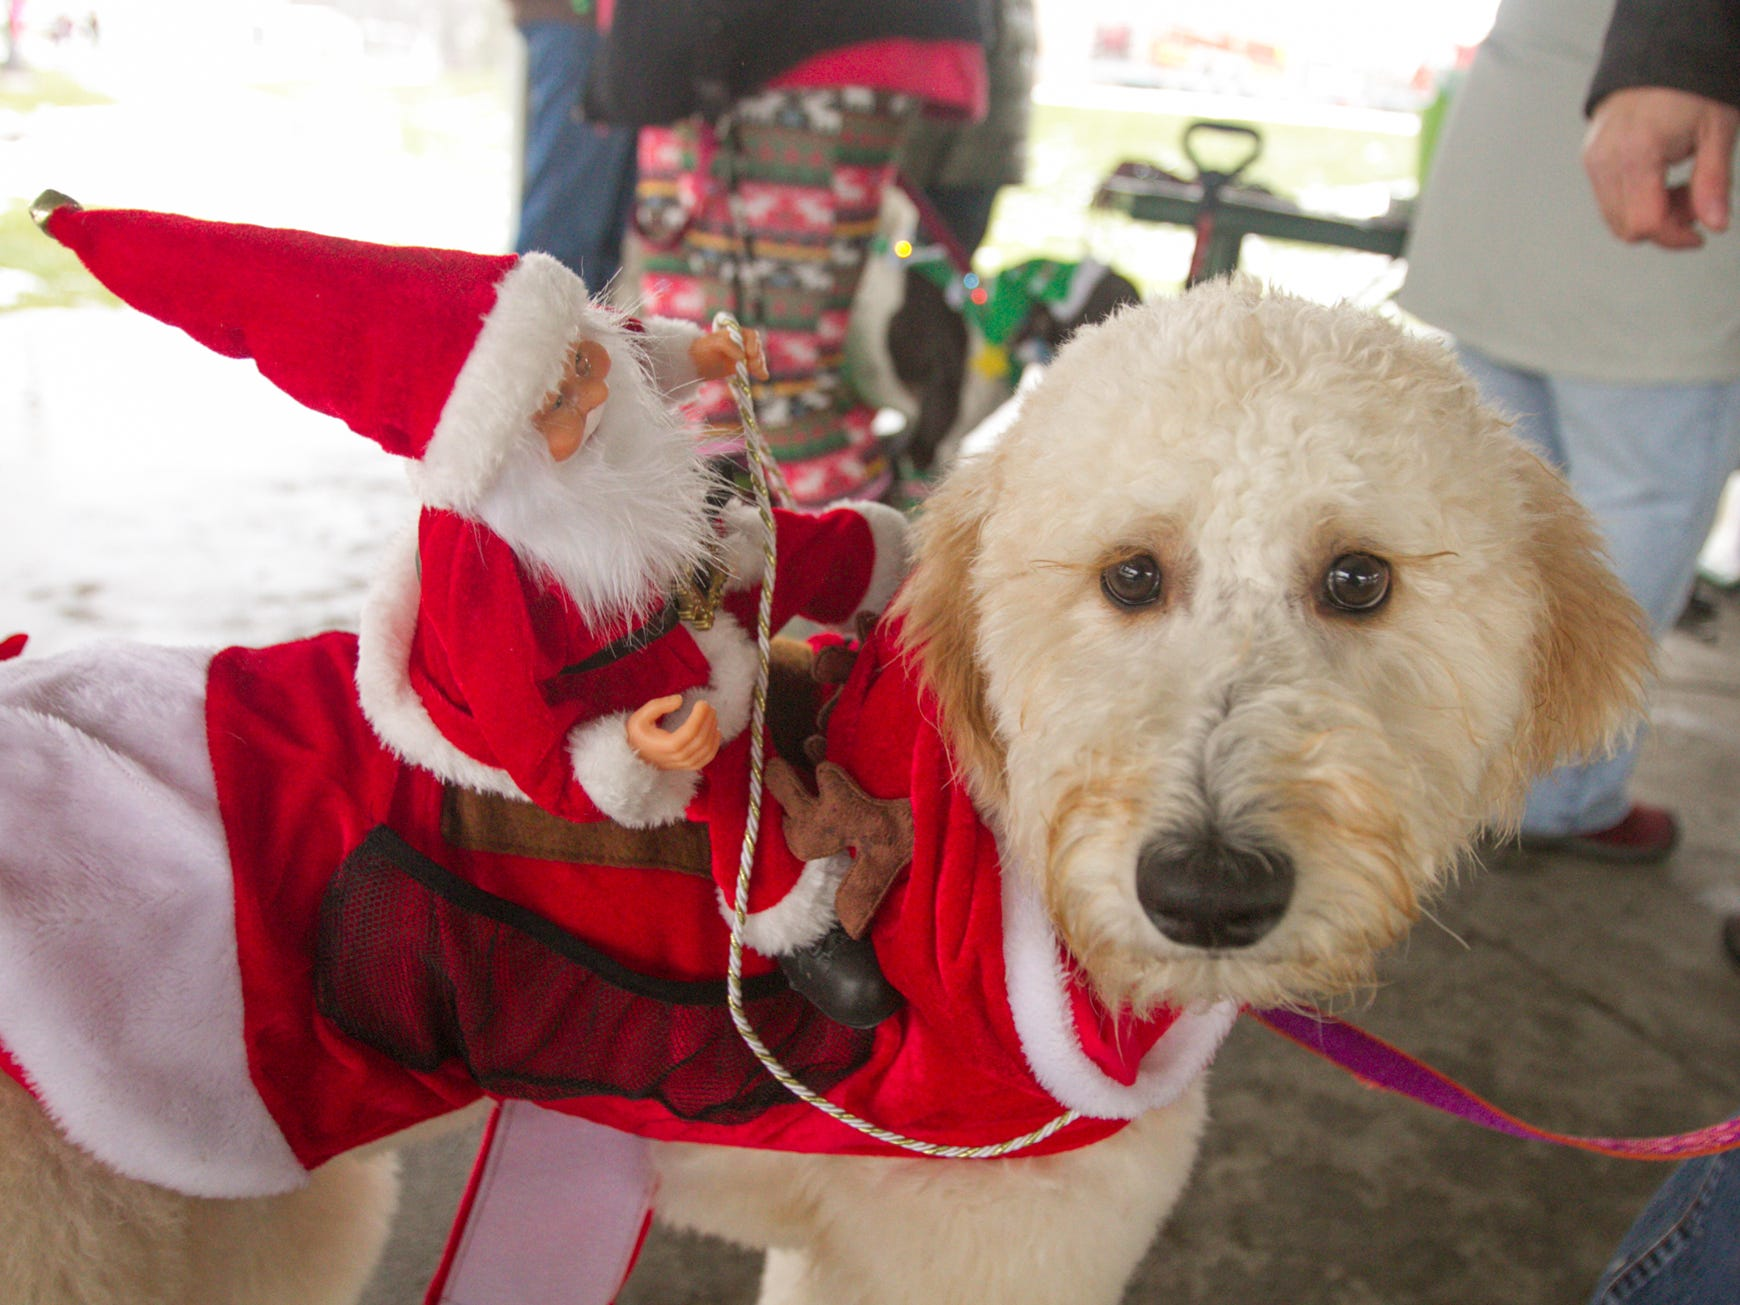 7-month-old Zoey, leashed by owner Ron Johnson, gives Santa a ride on her back for the pet parade, part of the Christmas in the 'Ville activities Saturday, Dec. 1, 2018.